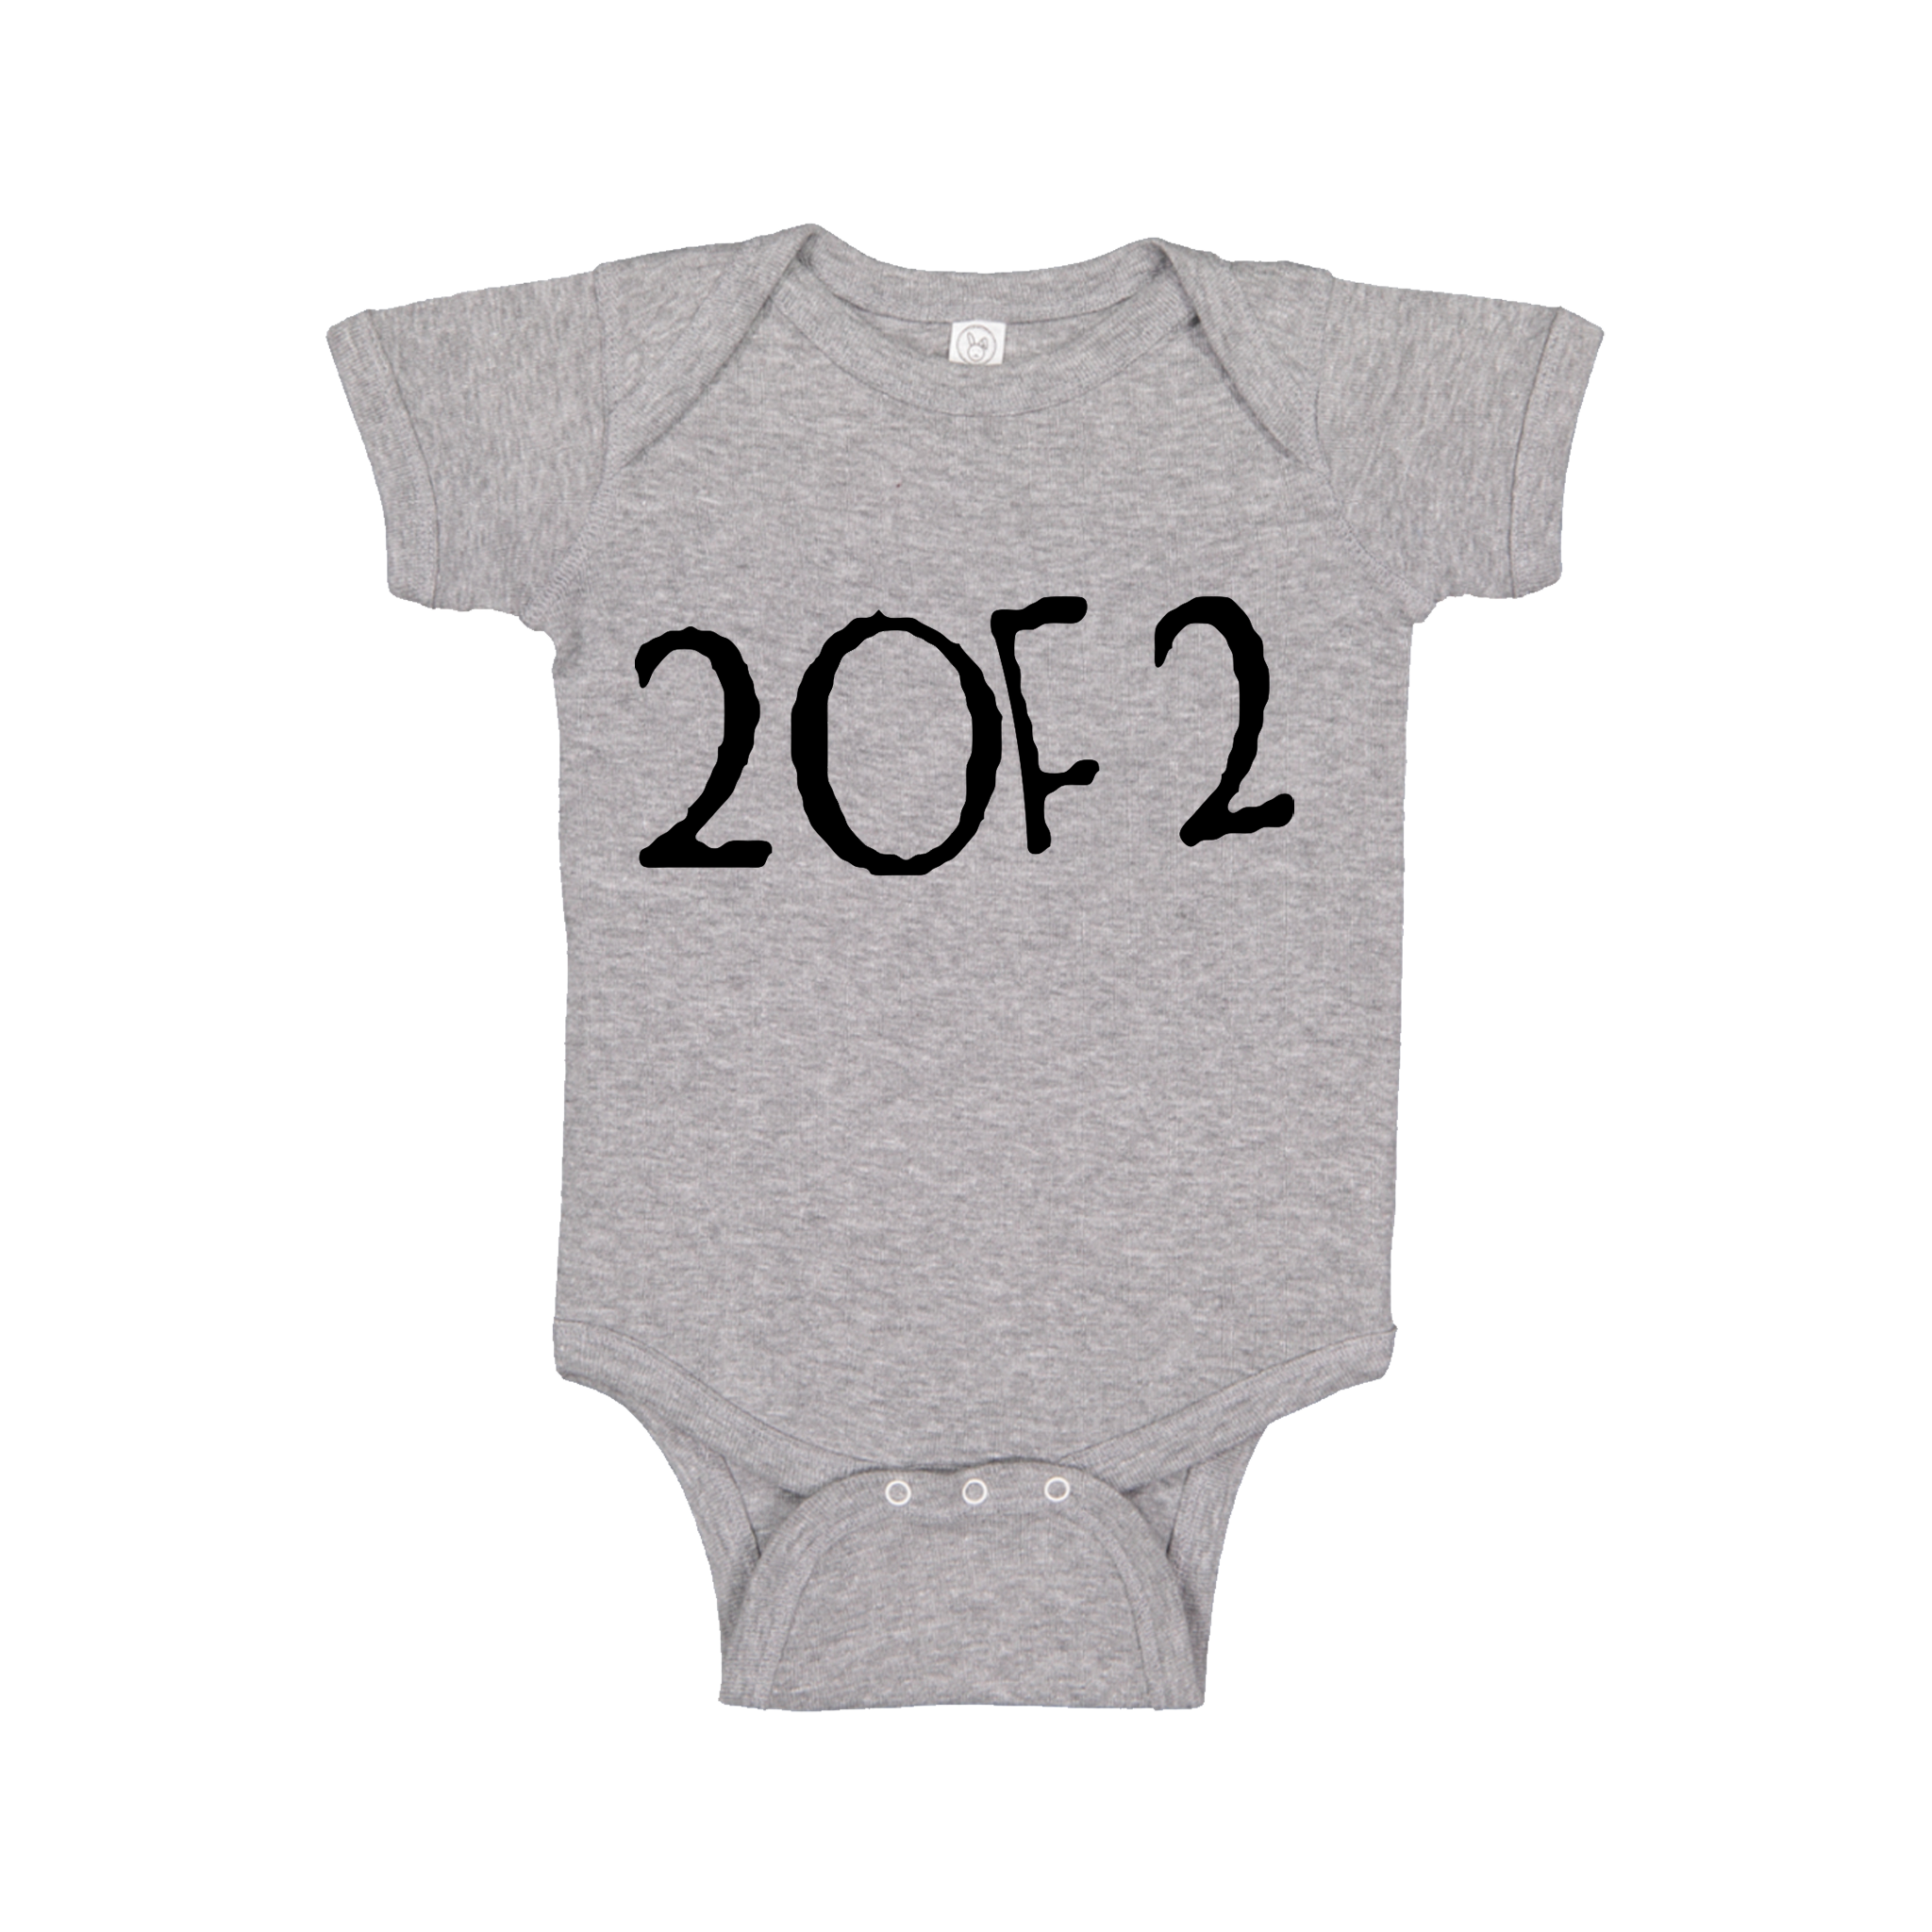 Baby Onesie Matching Twins Two of Two (2 of 2) - 0 to 24 months